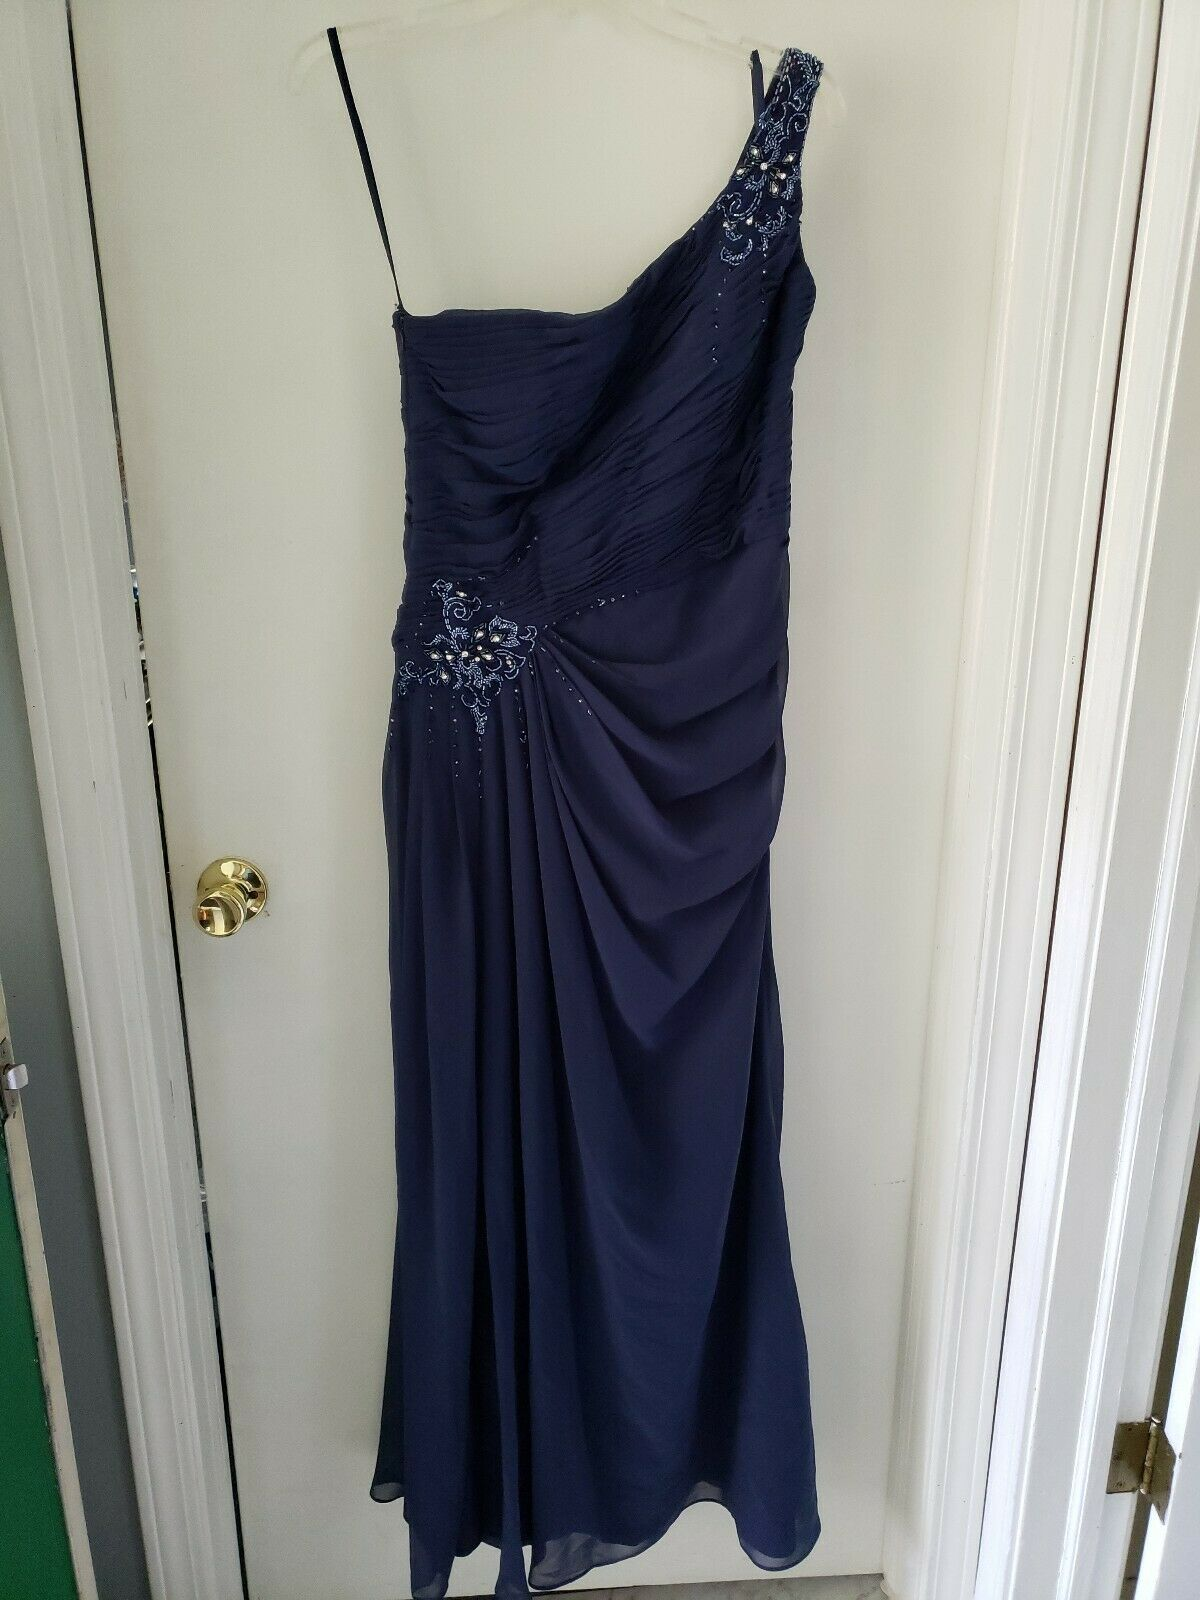 Bridal Mother Of Bride Gown Sequined Formal Gala Wedding Blue Teal Dress Sz 10